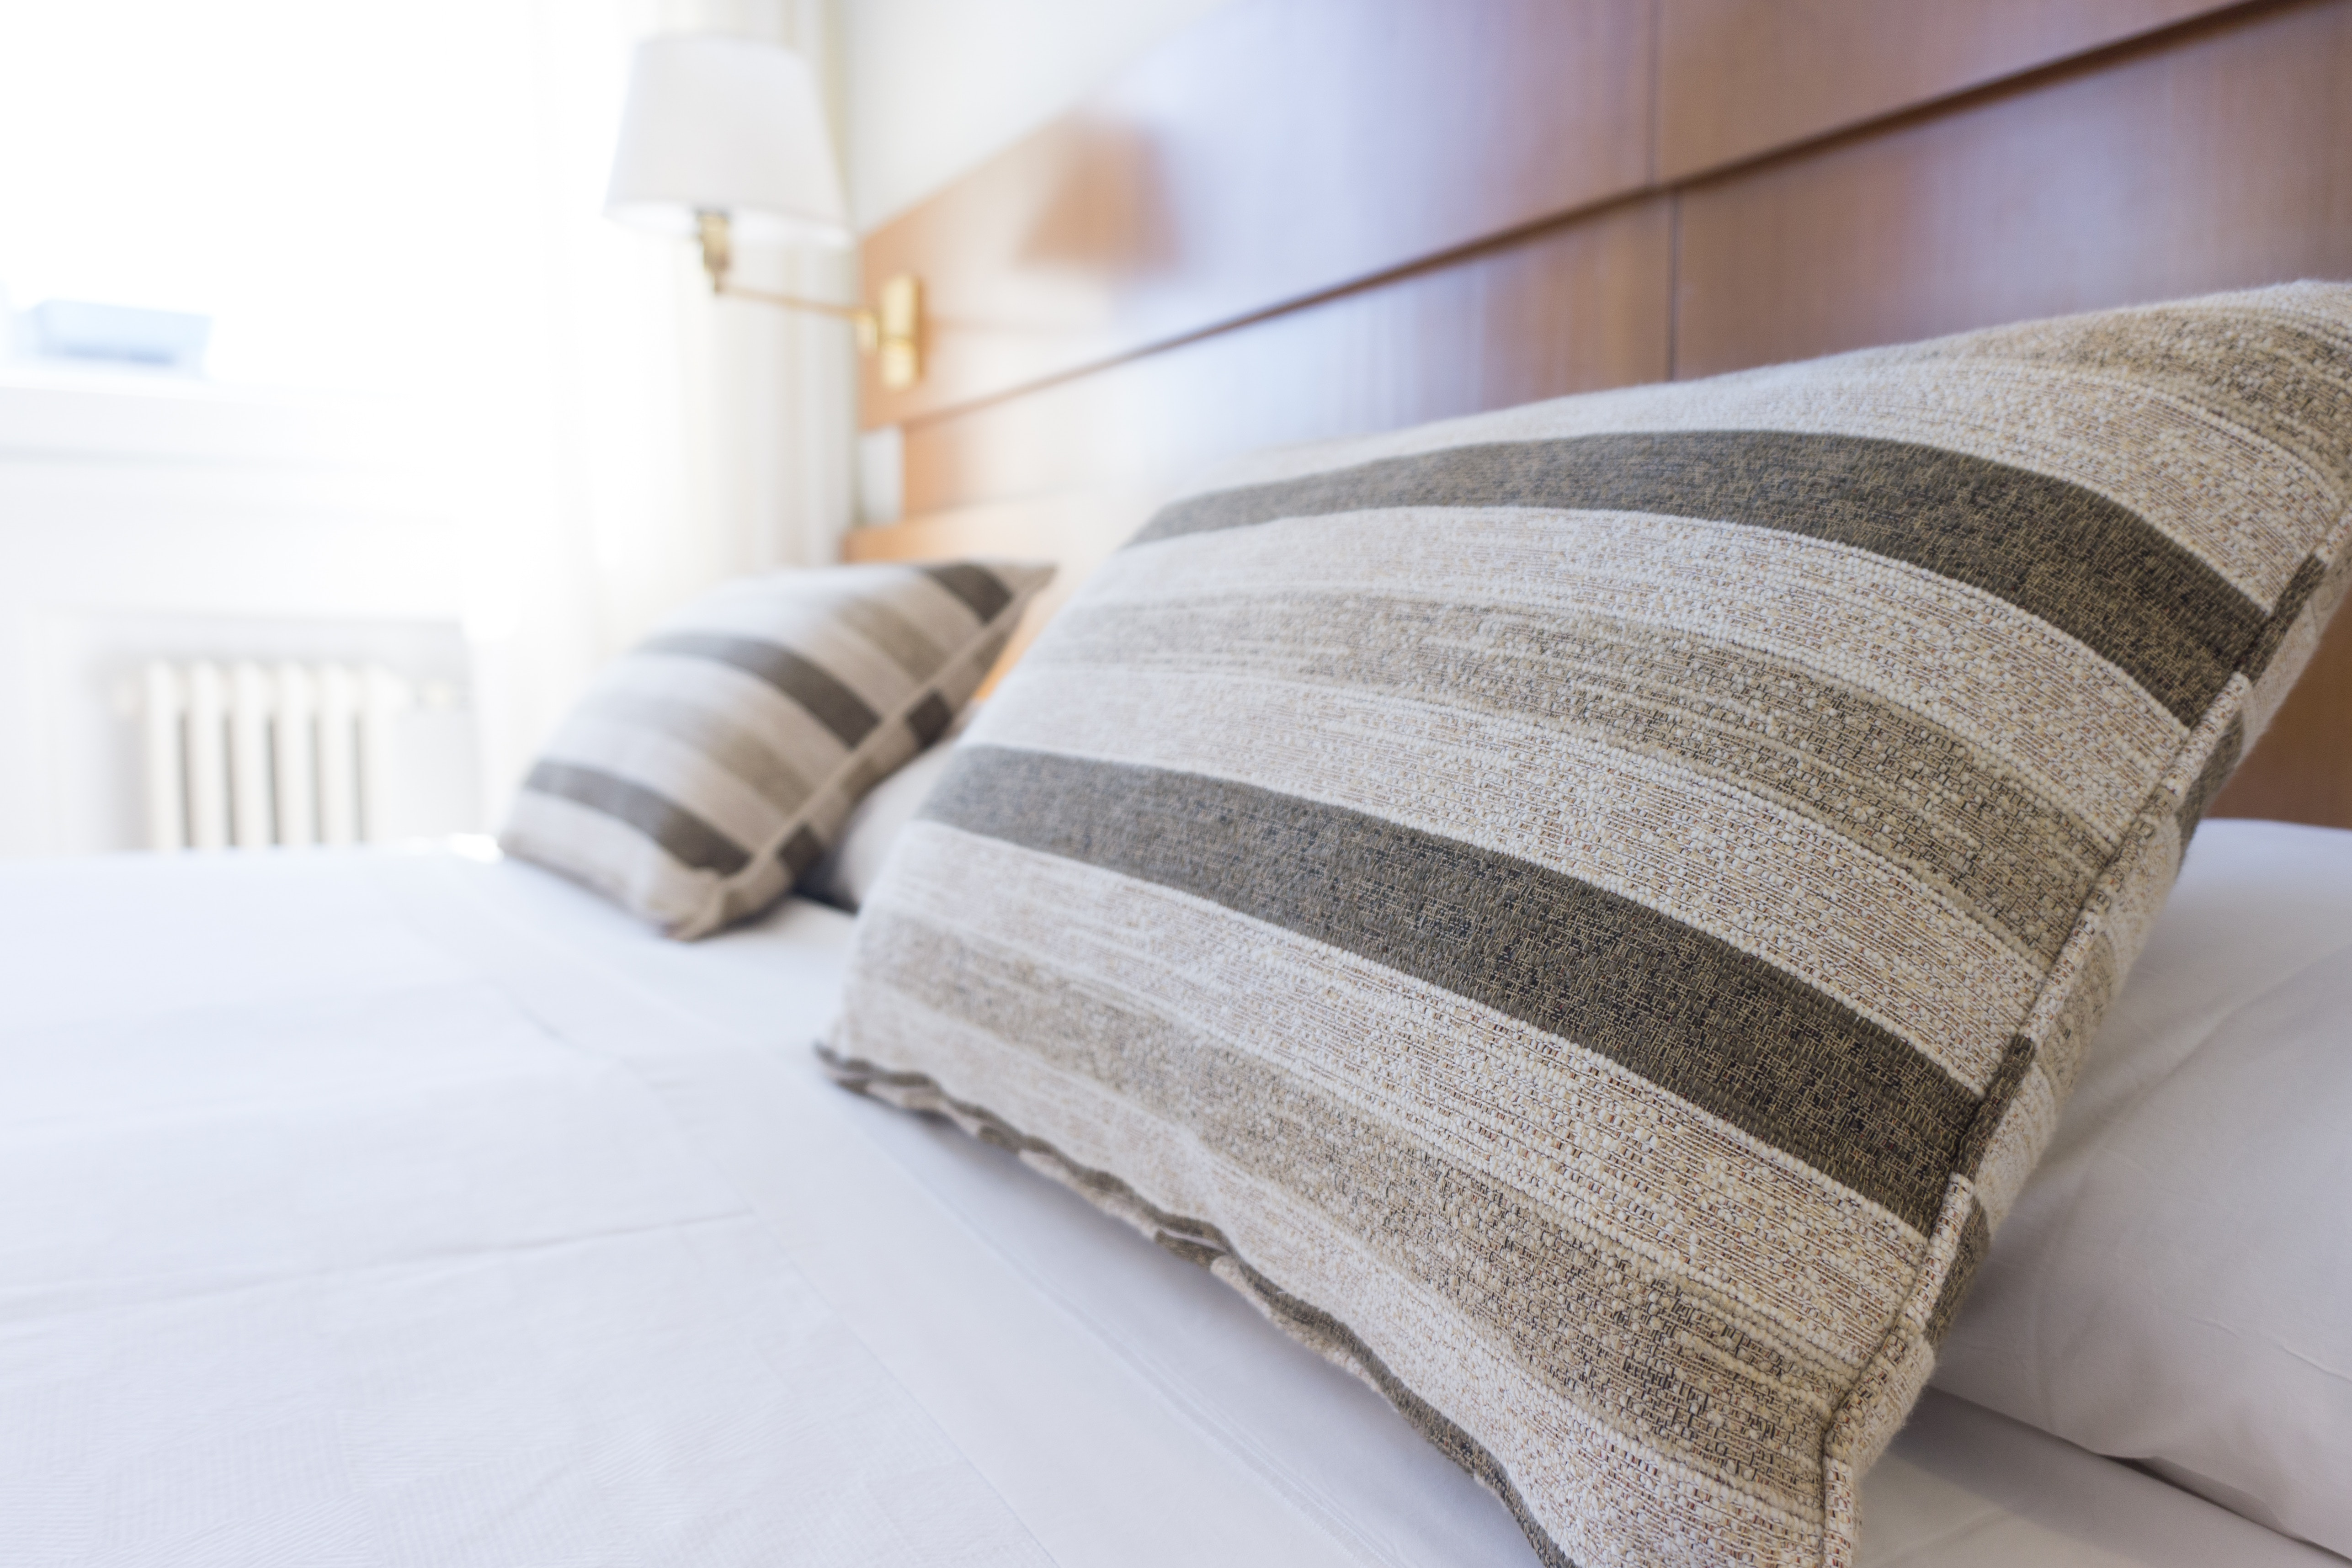 grey striped pillows on bed